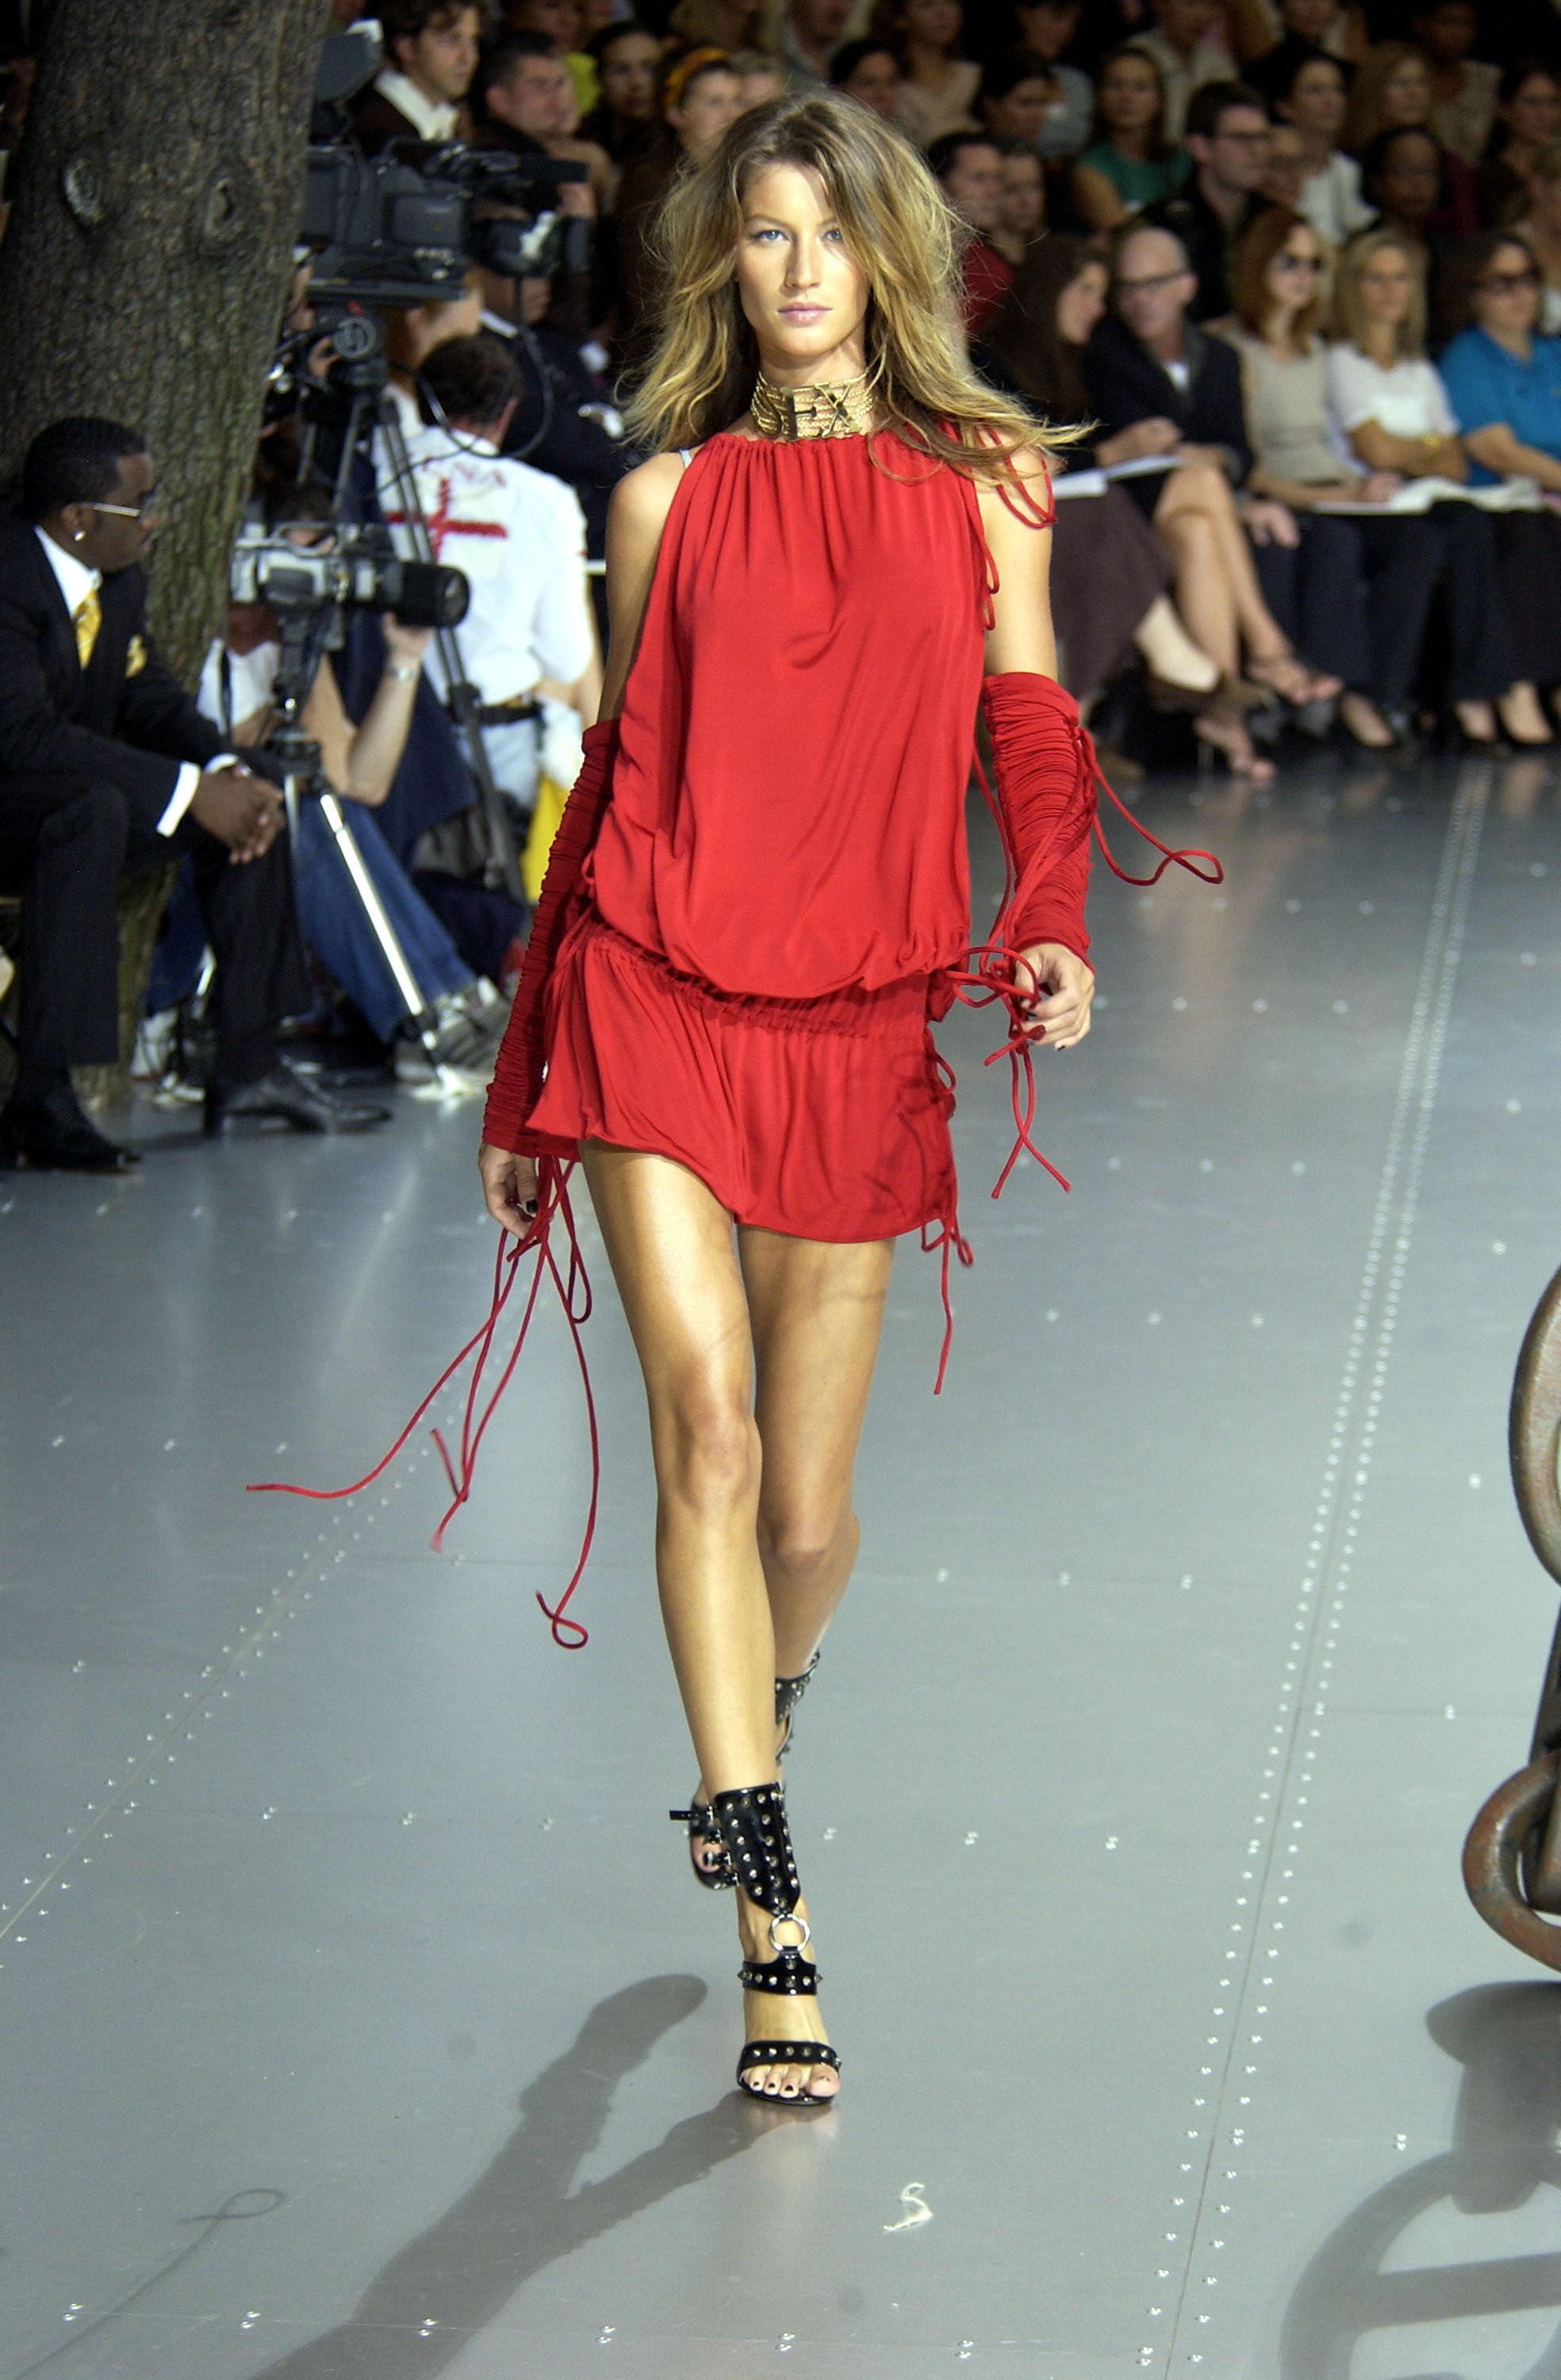 3a94d3e69f 15 of Gisele Bundchen s Most Memorable Runway Moments